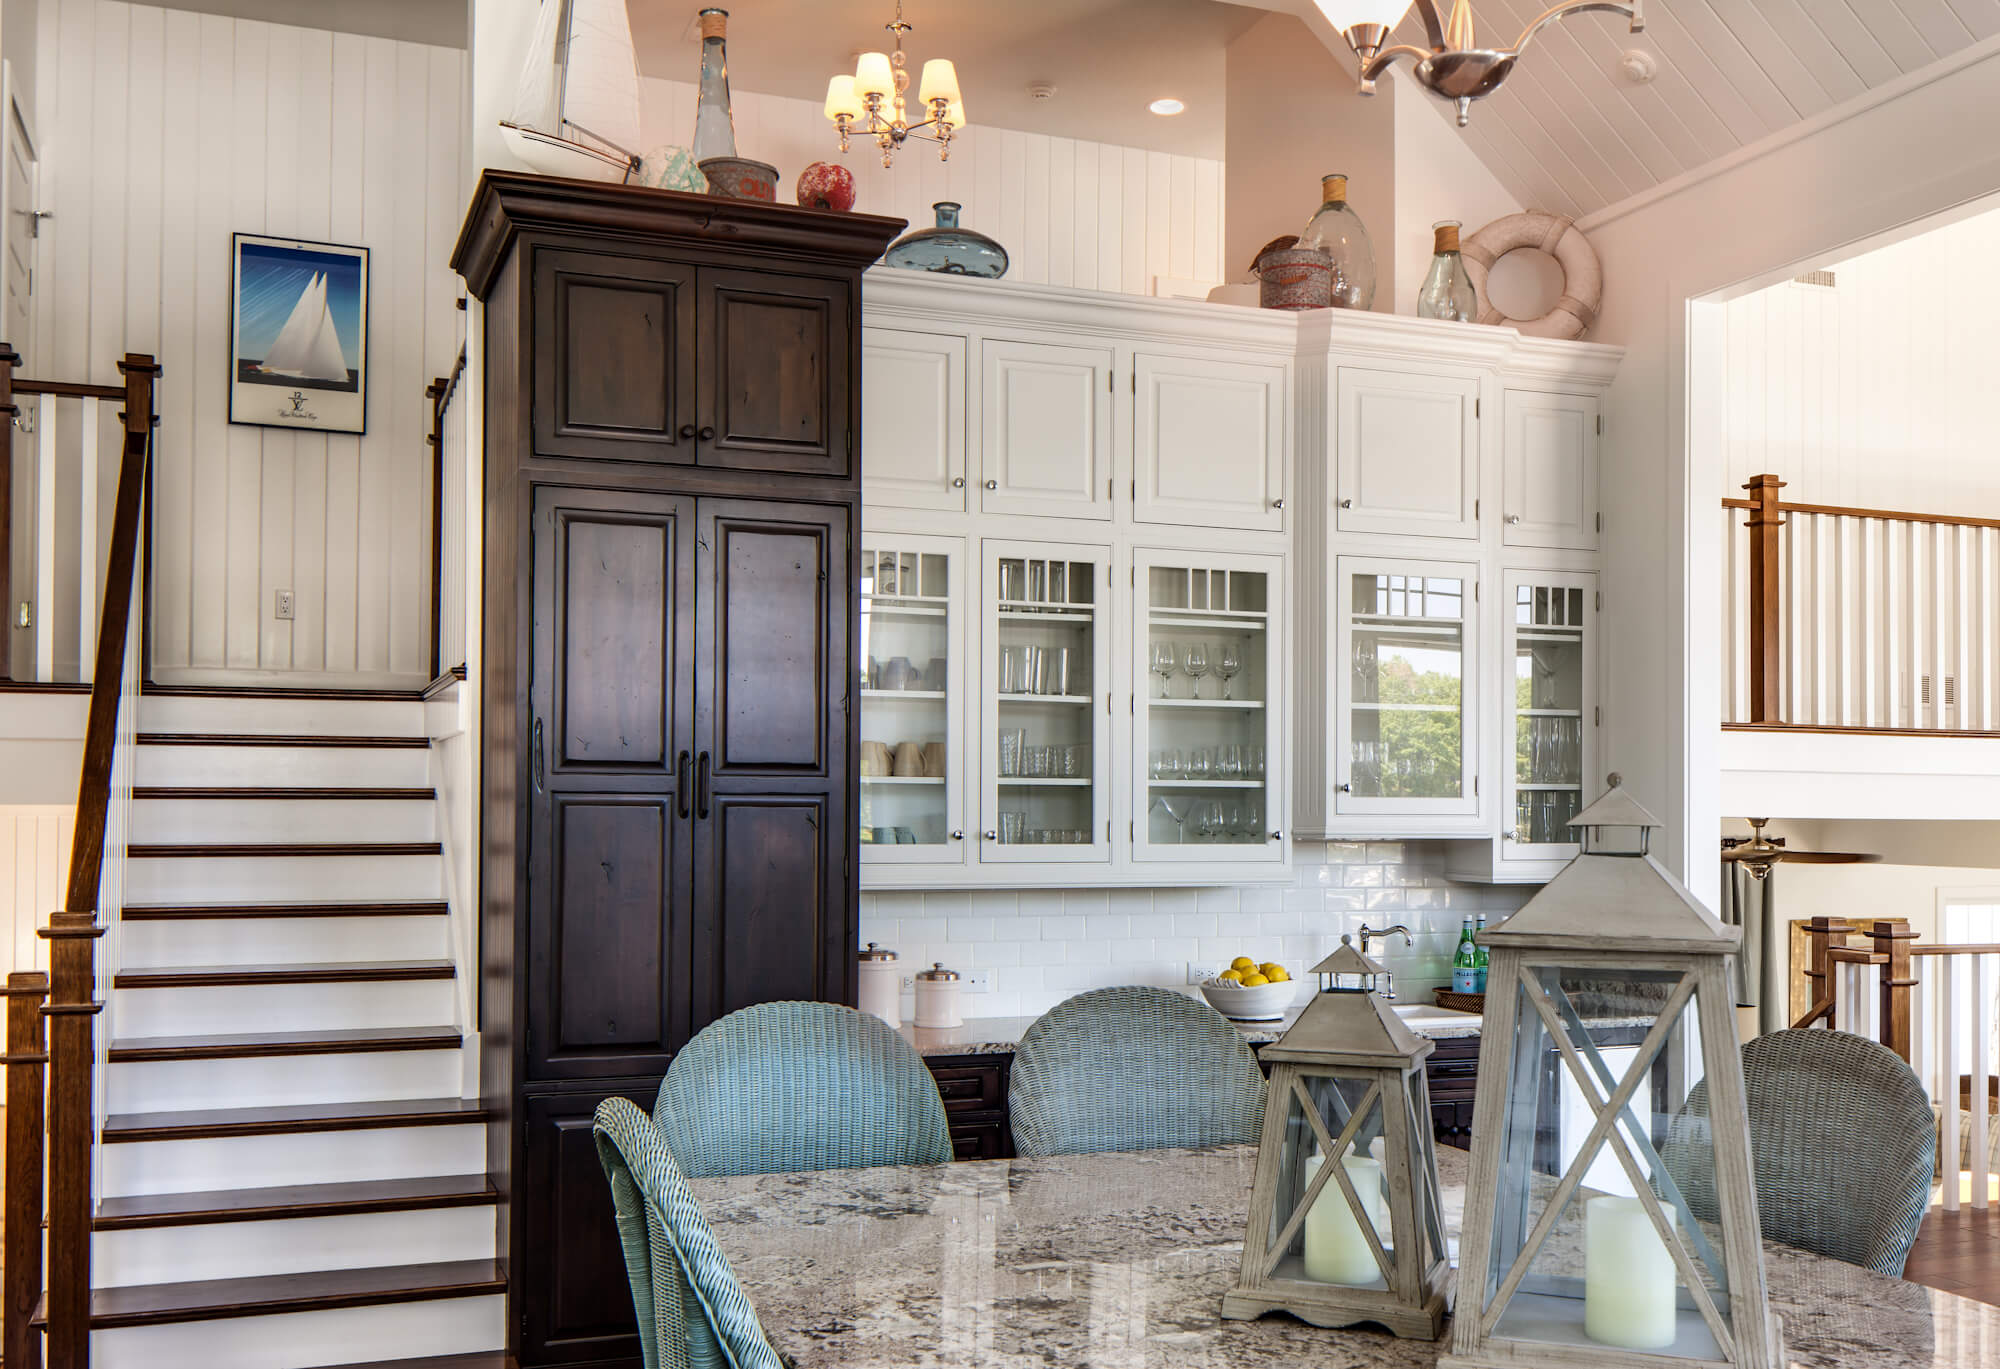 Dura Supreme Knotty Alder cabinets in dark Patina Stained finish. Design by Kim Hoegger of Kim Hoegger Home, Texas.